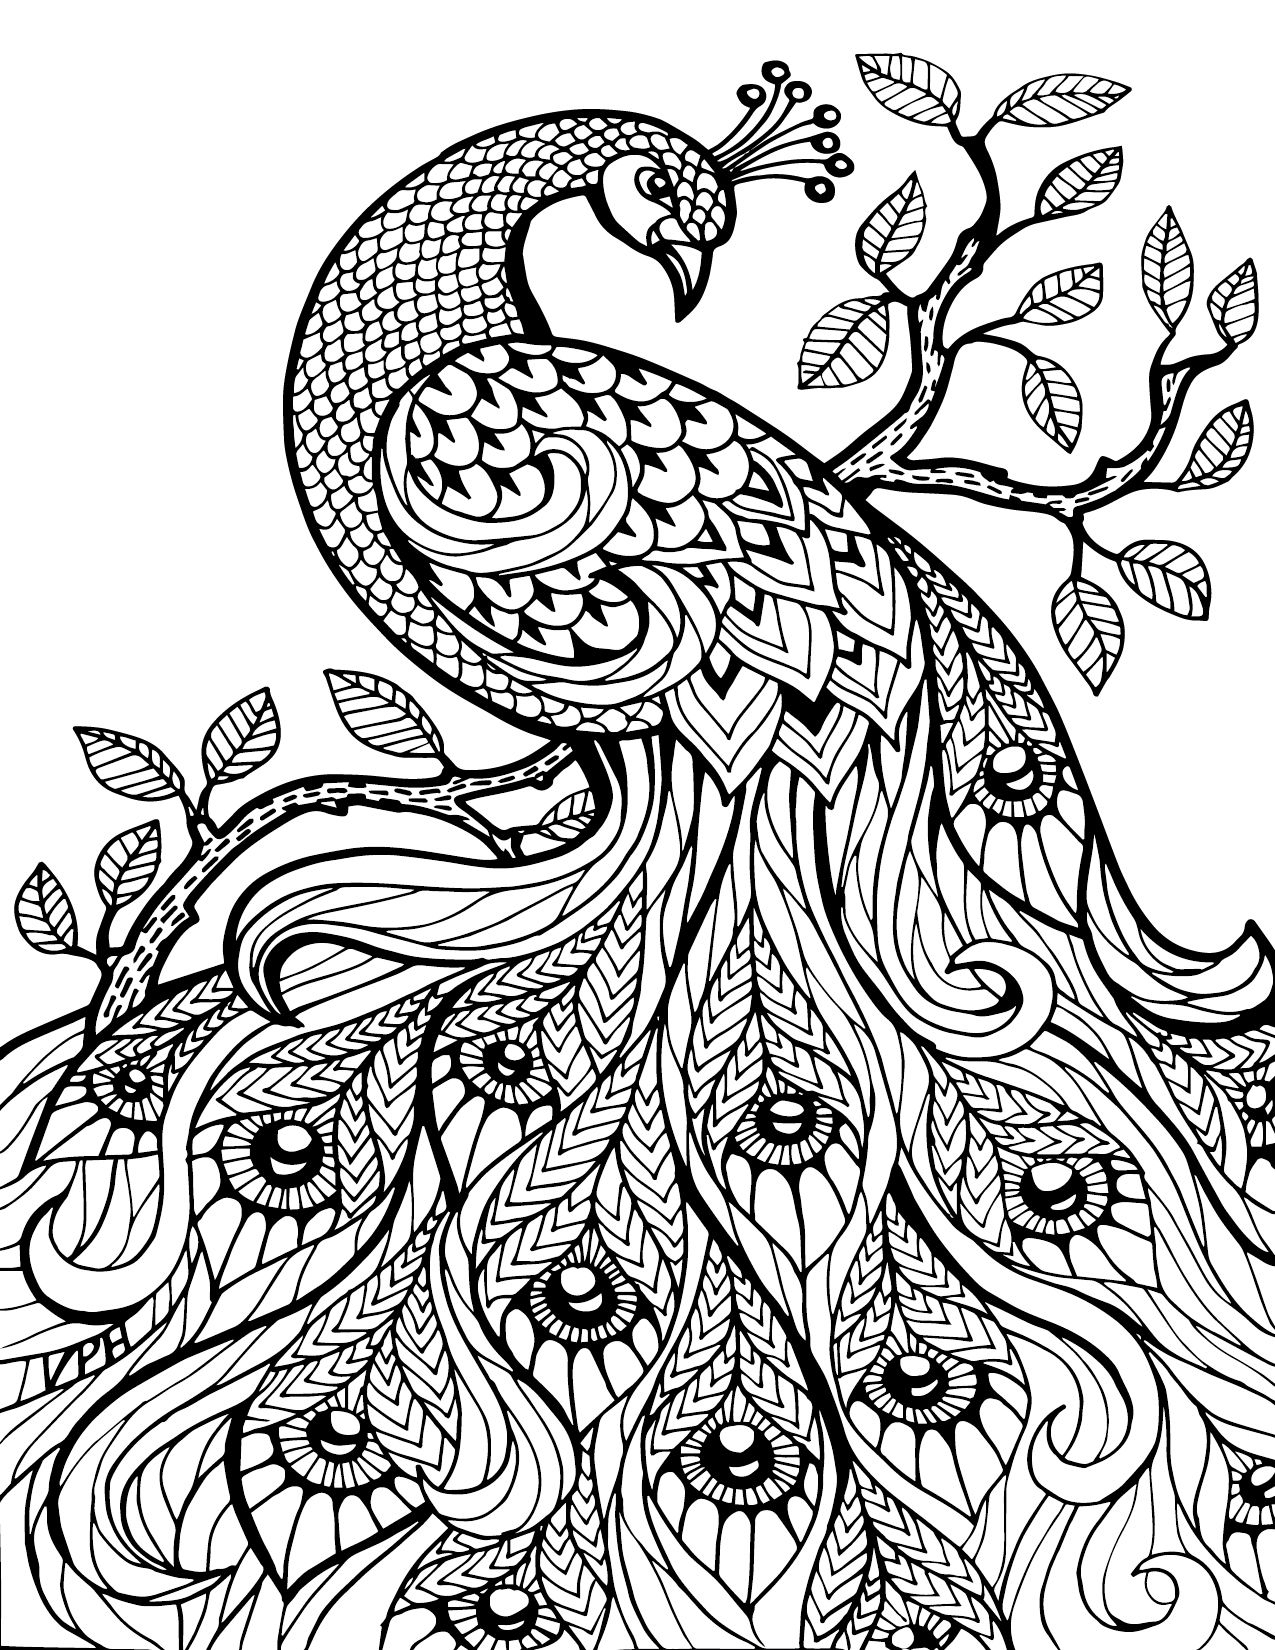 Free Printable Coloring Pages For Adults Only Image 36 Art - Free Printable Peacock Pictures